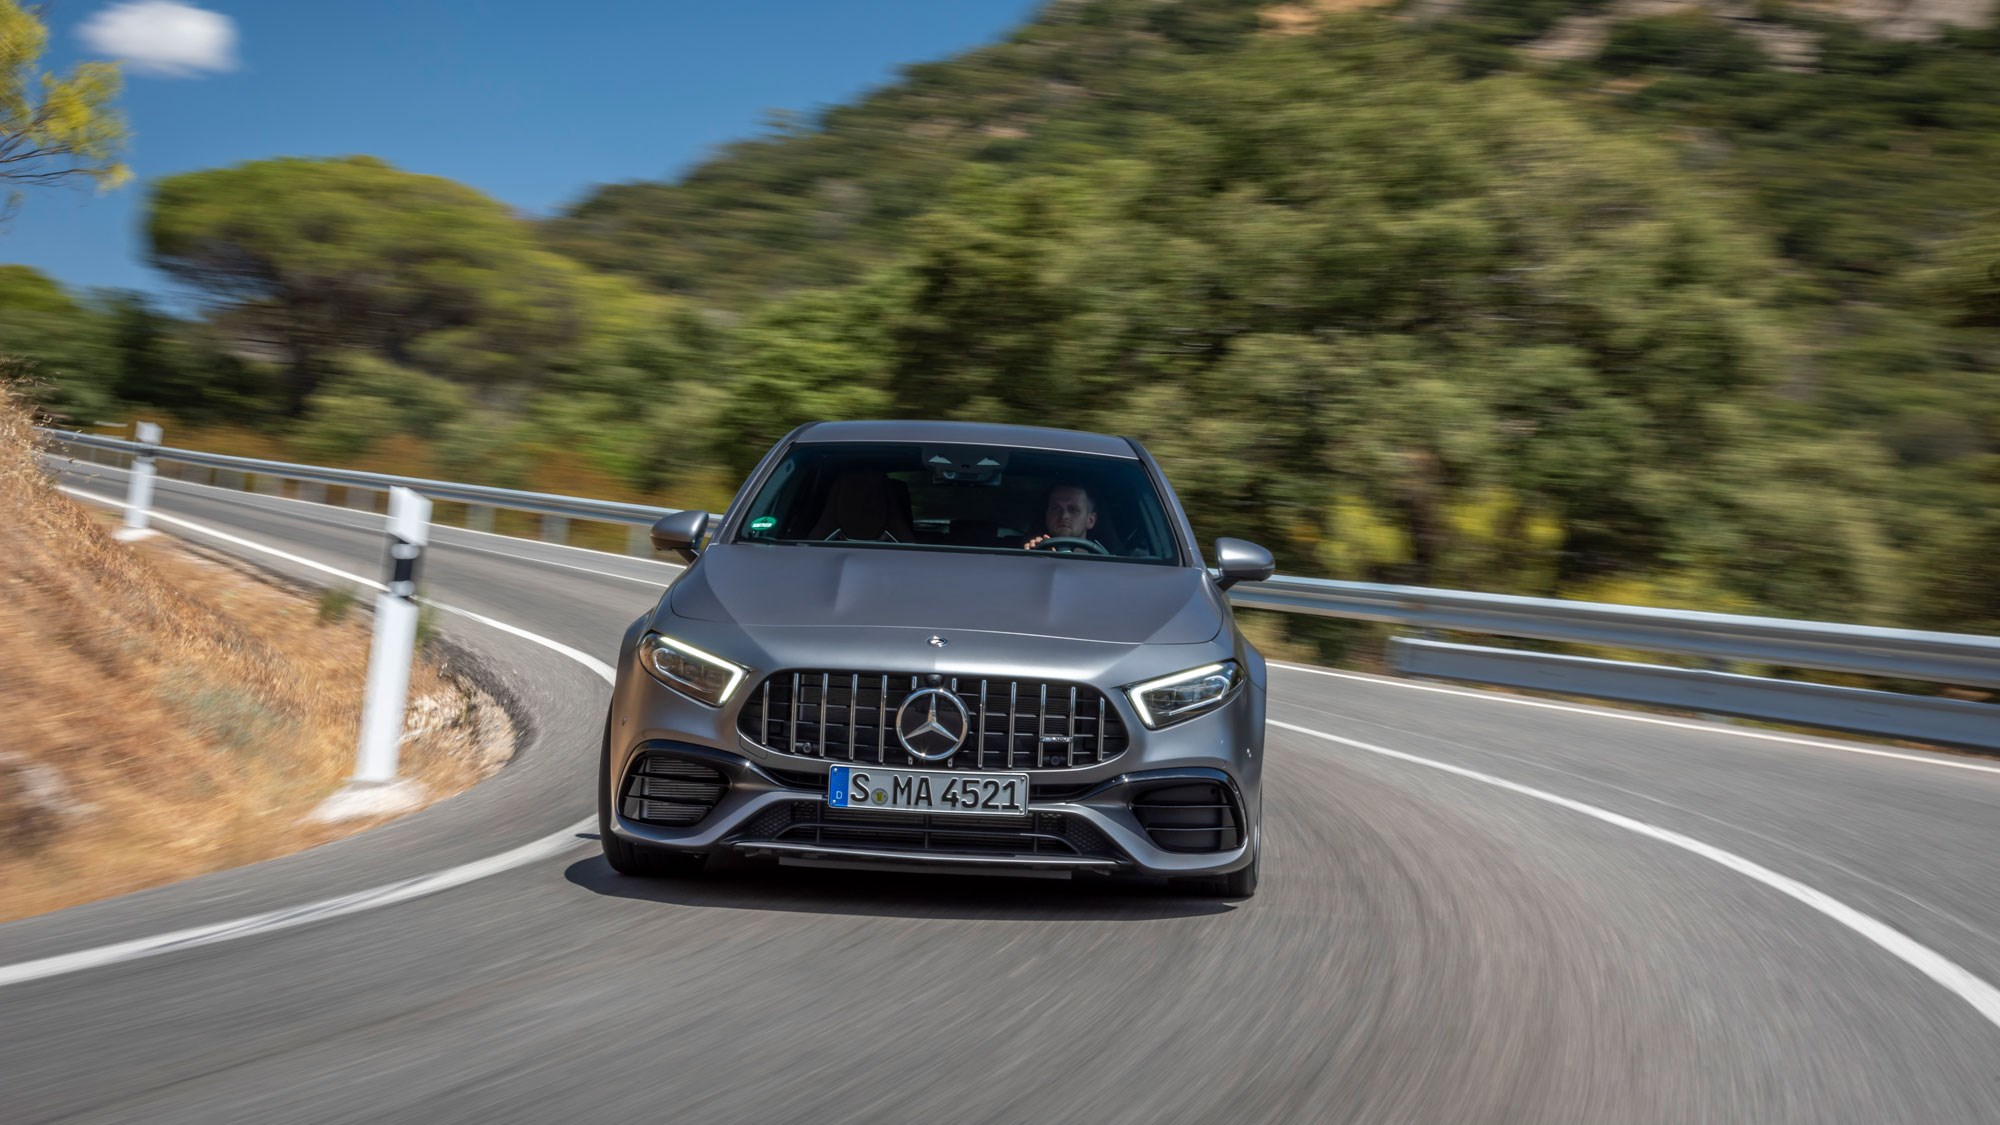 The A45 gets the AMG Panamerica grille